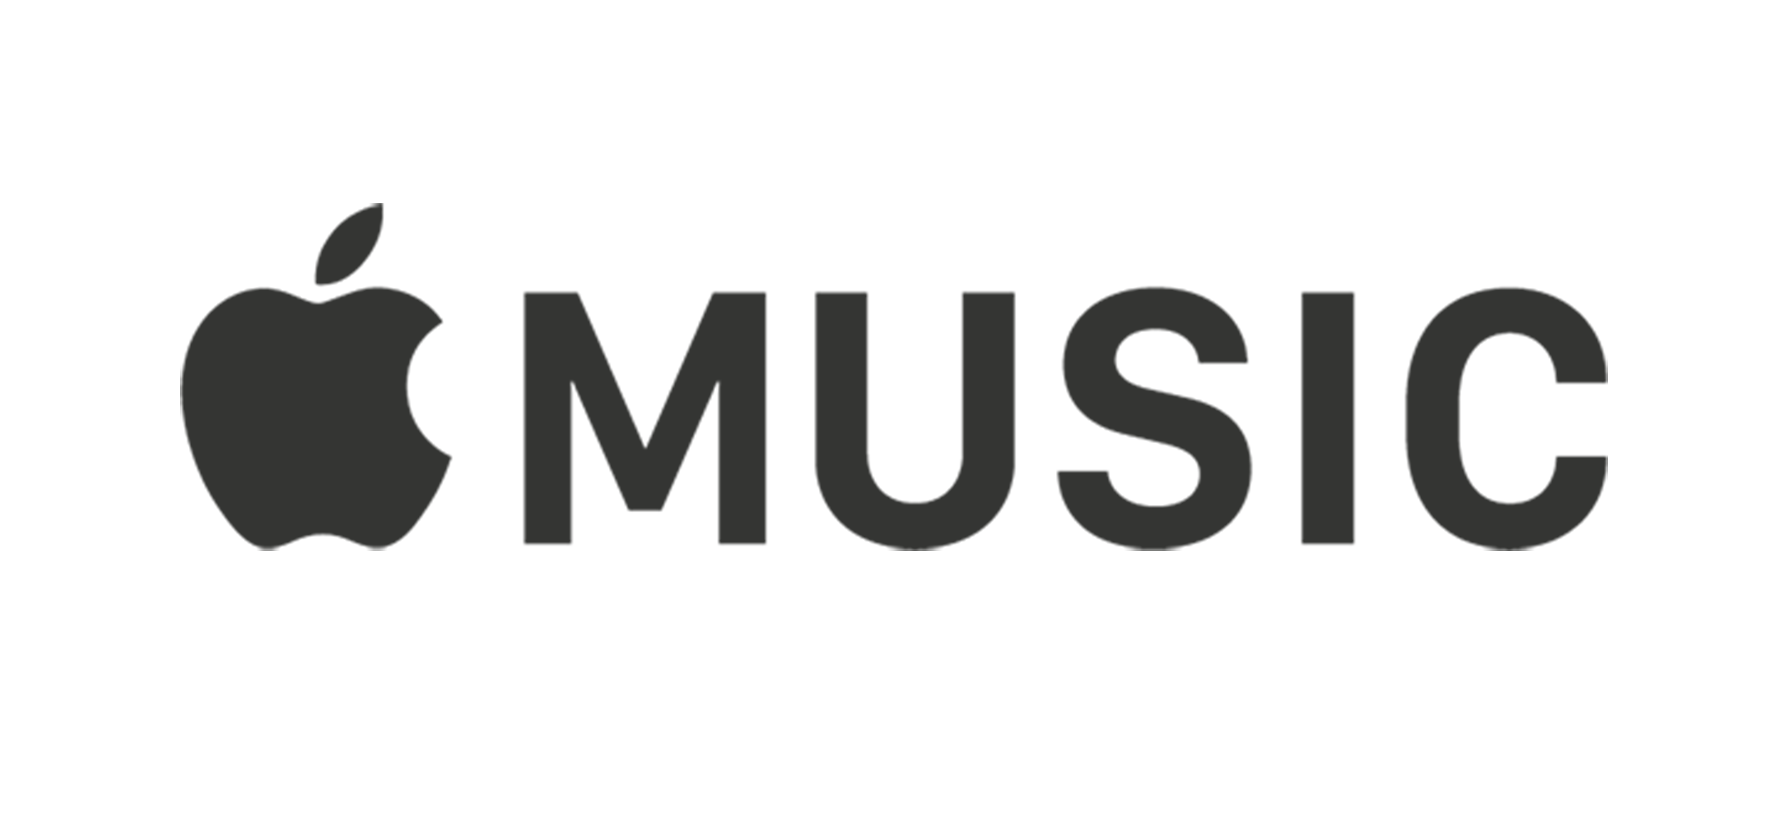 Apple-Music-logo copy.png